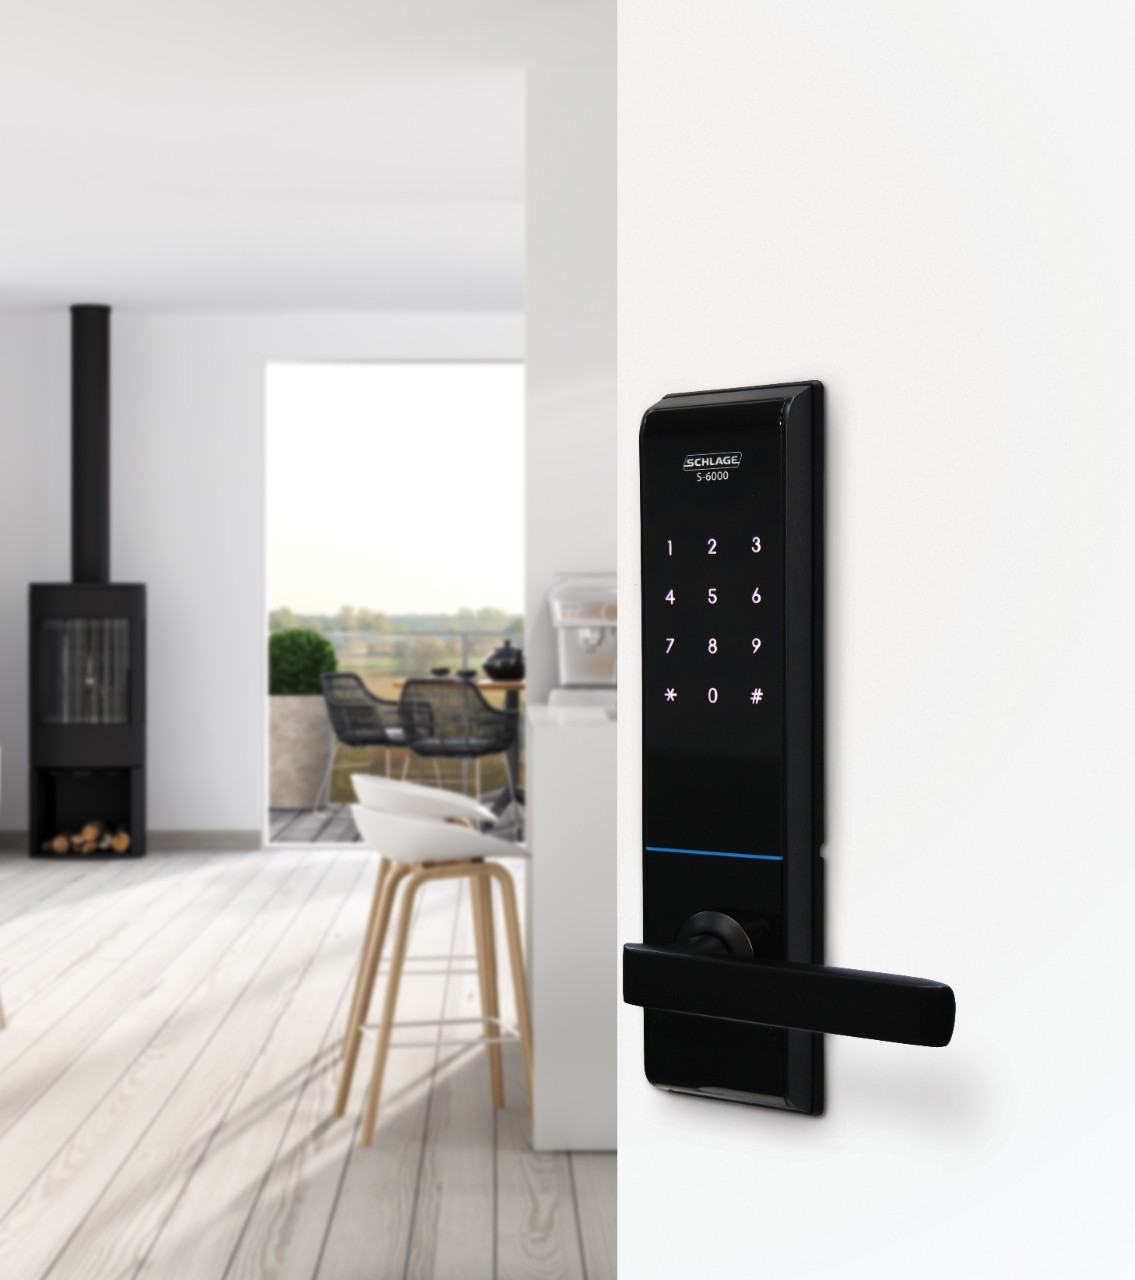 Schlage S 6000 Lock Here Is An Electronic Code Which Can Be Used As A Door